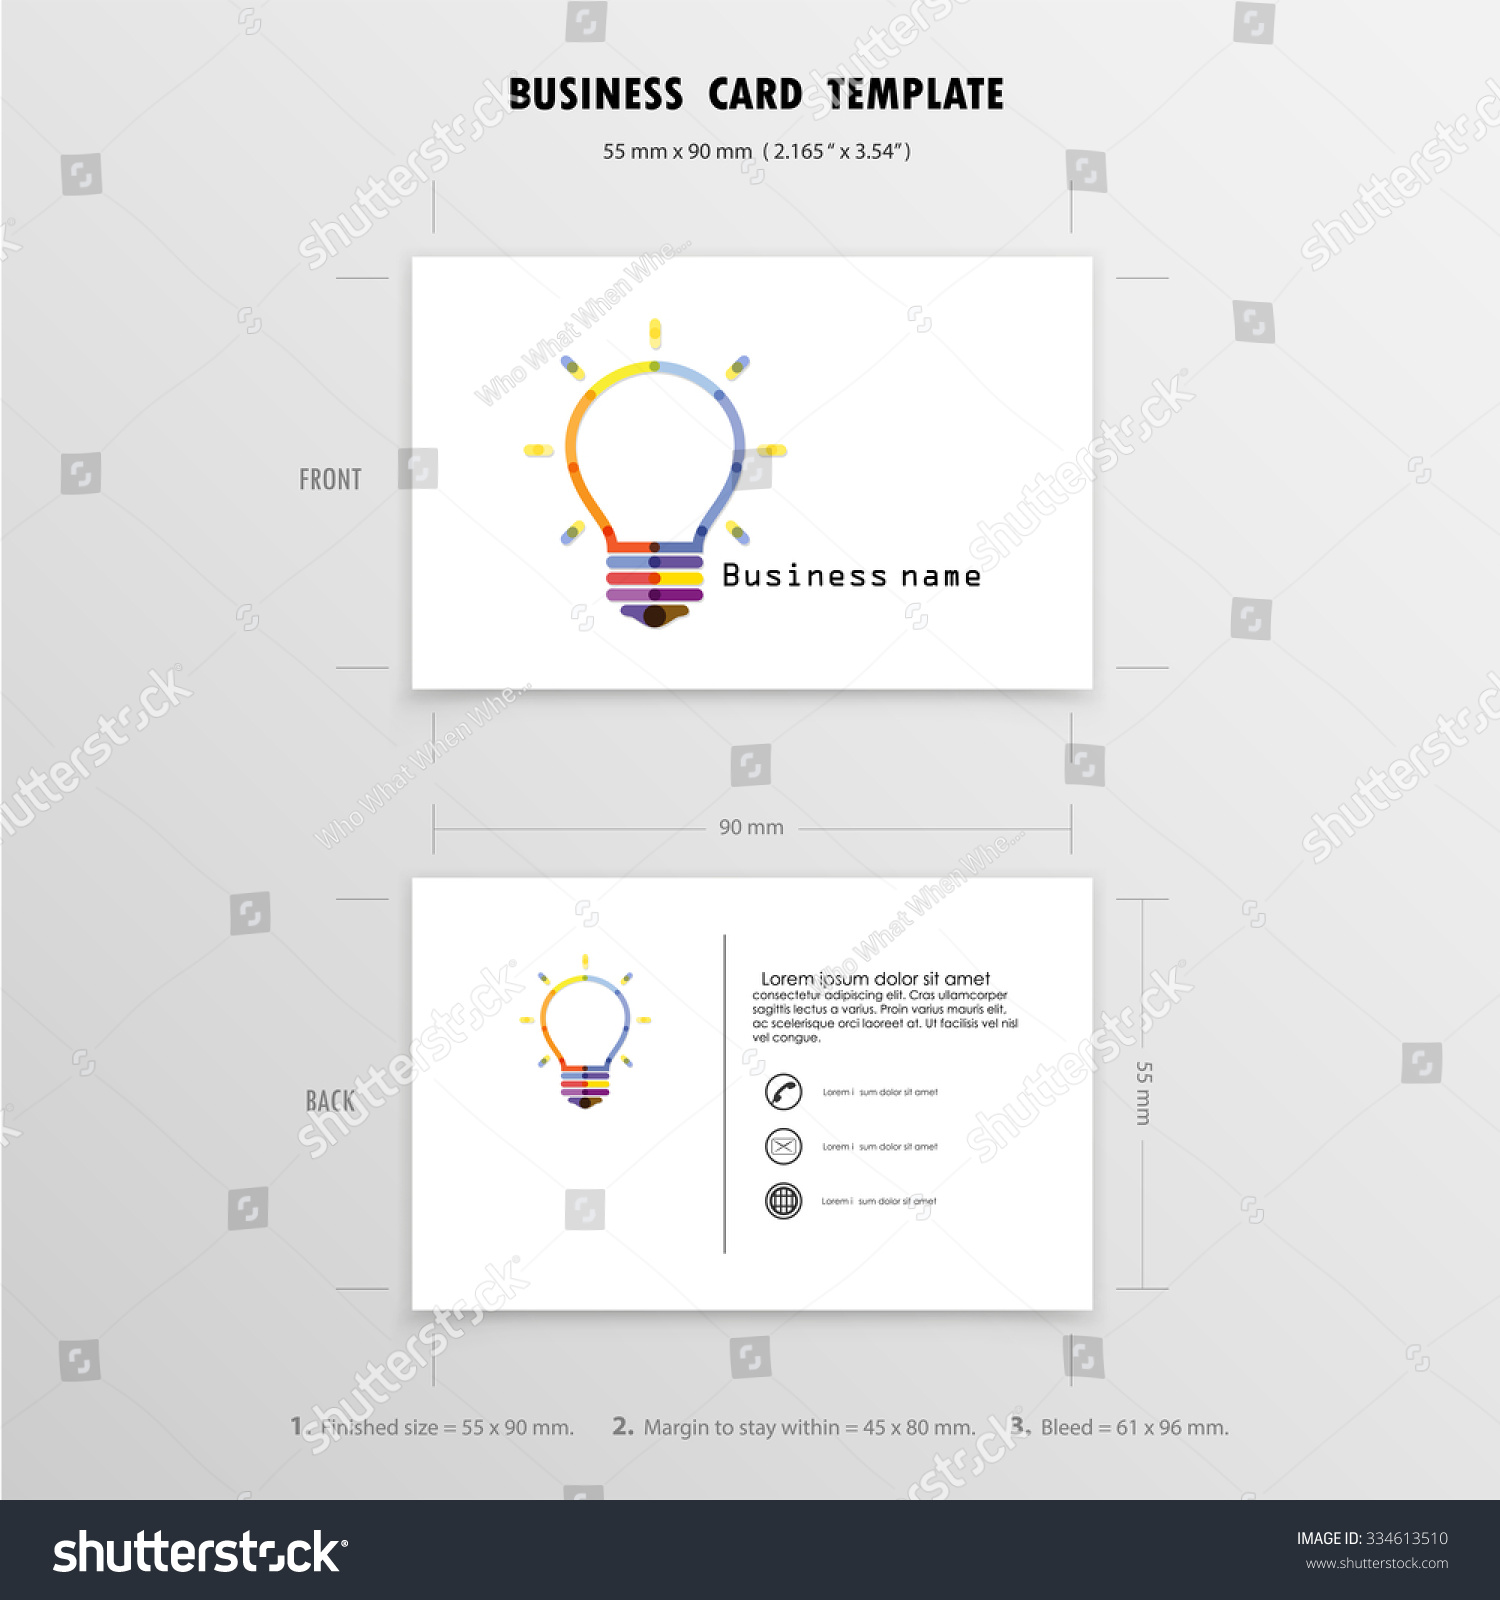 Business Cards: Business Cards Size Mm